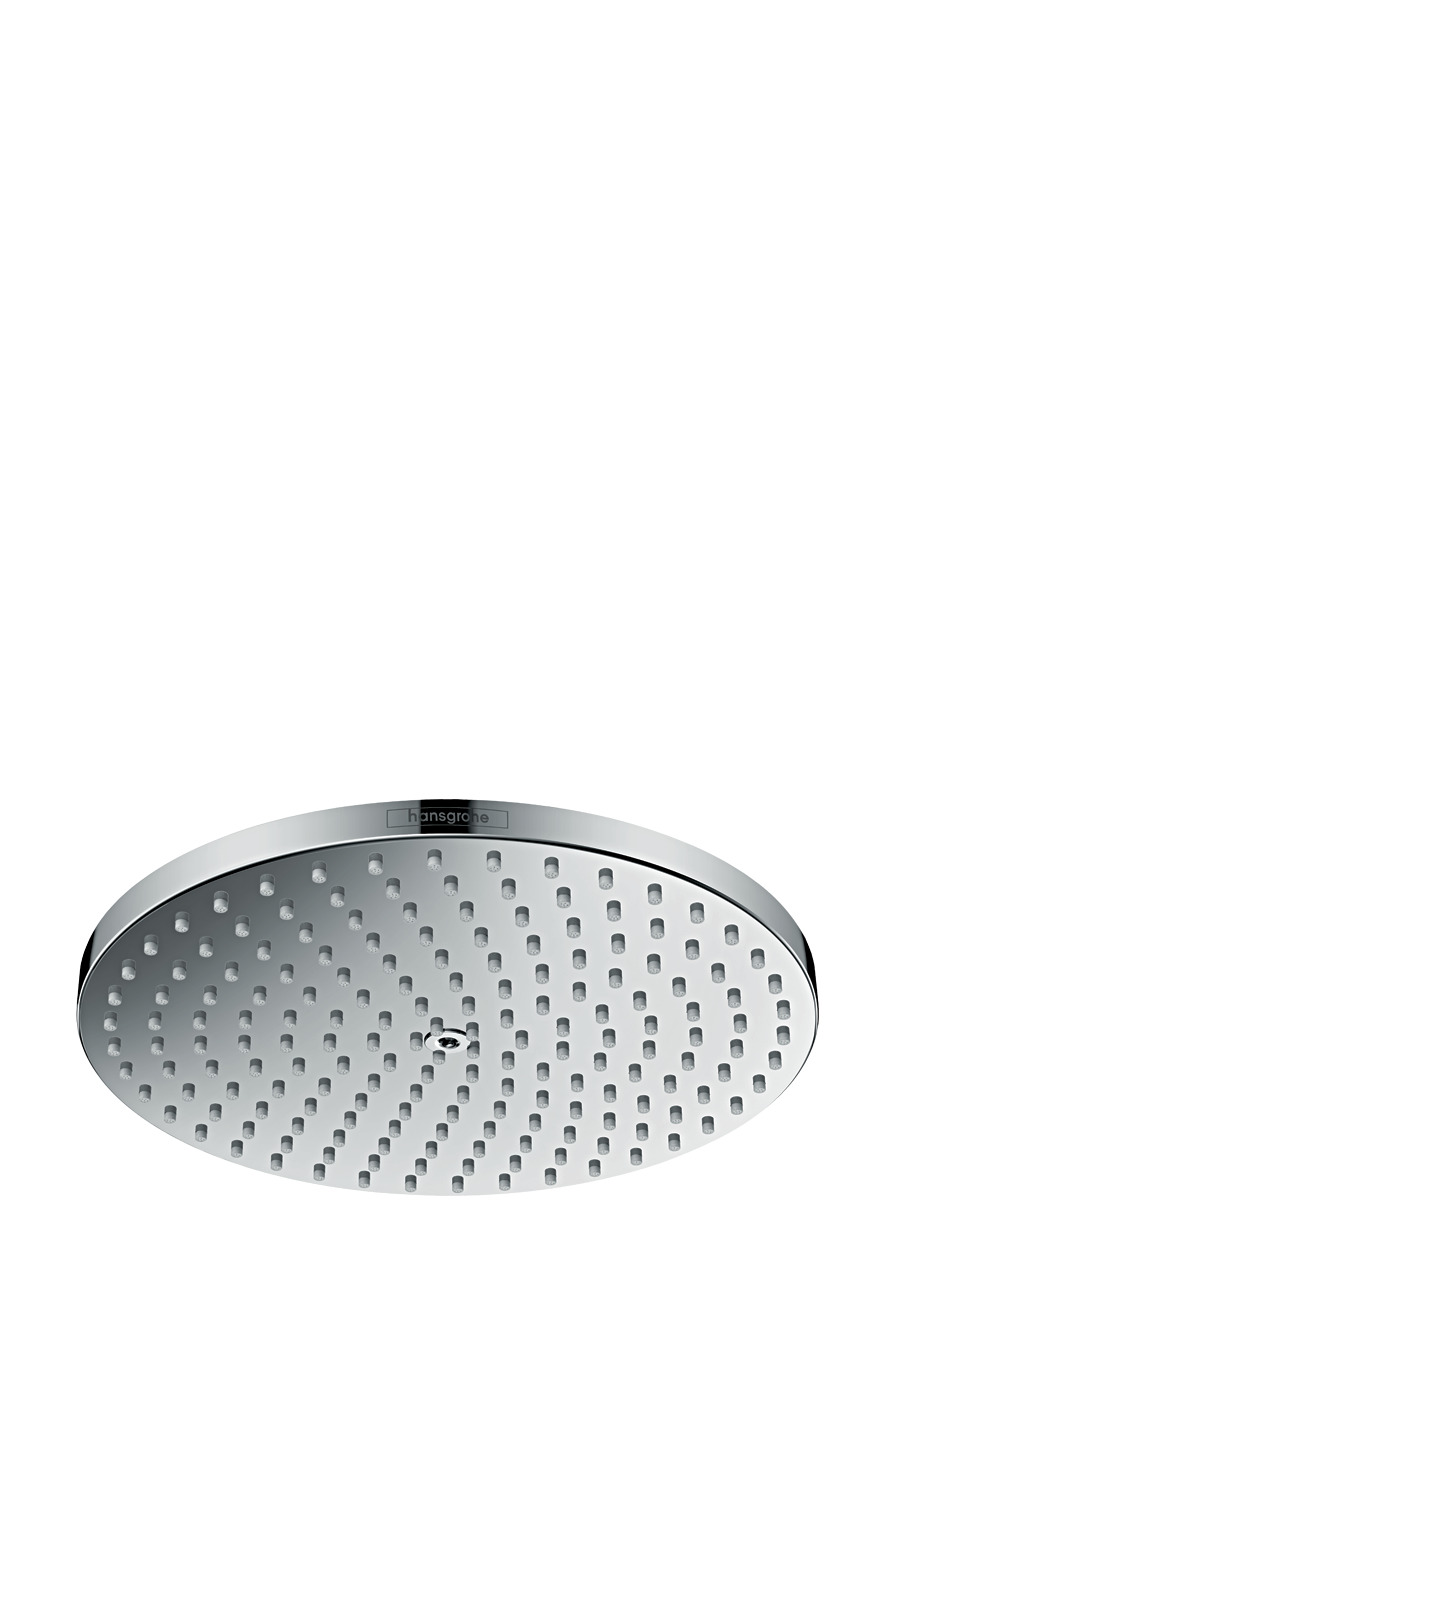 Details About Hansgrohe Shower Head Raindance S 240 1jet 27623000